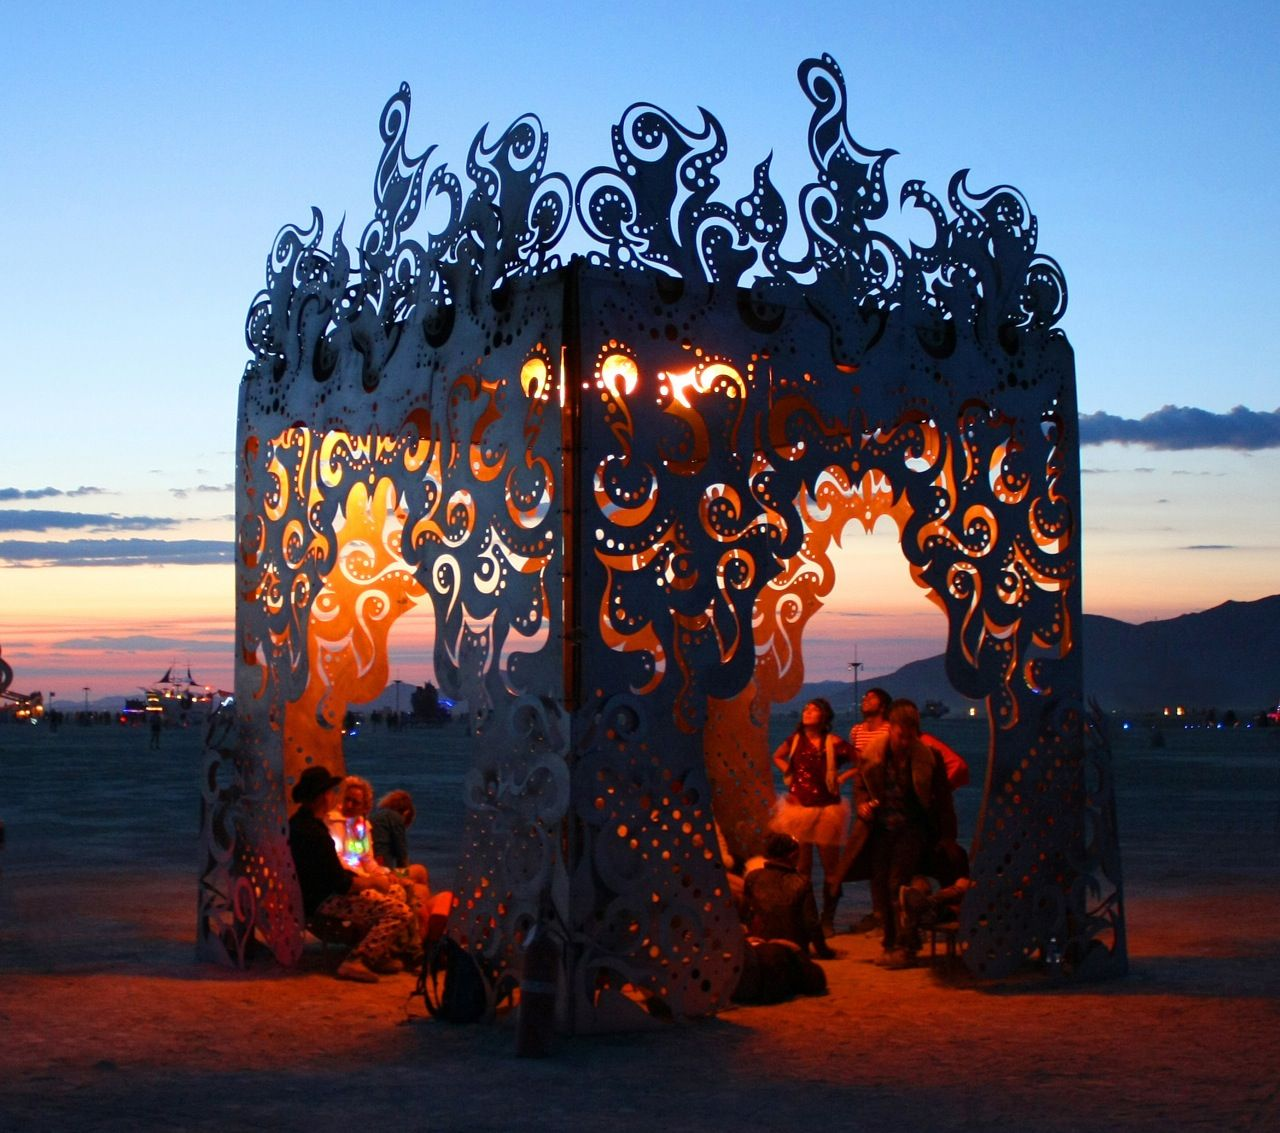 Burning Man 2009 Poetic Holding Flame Burning